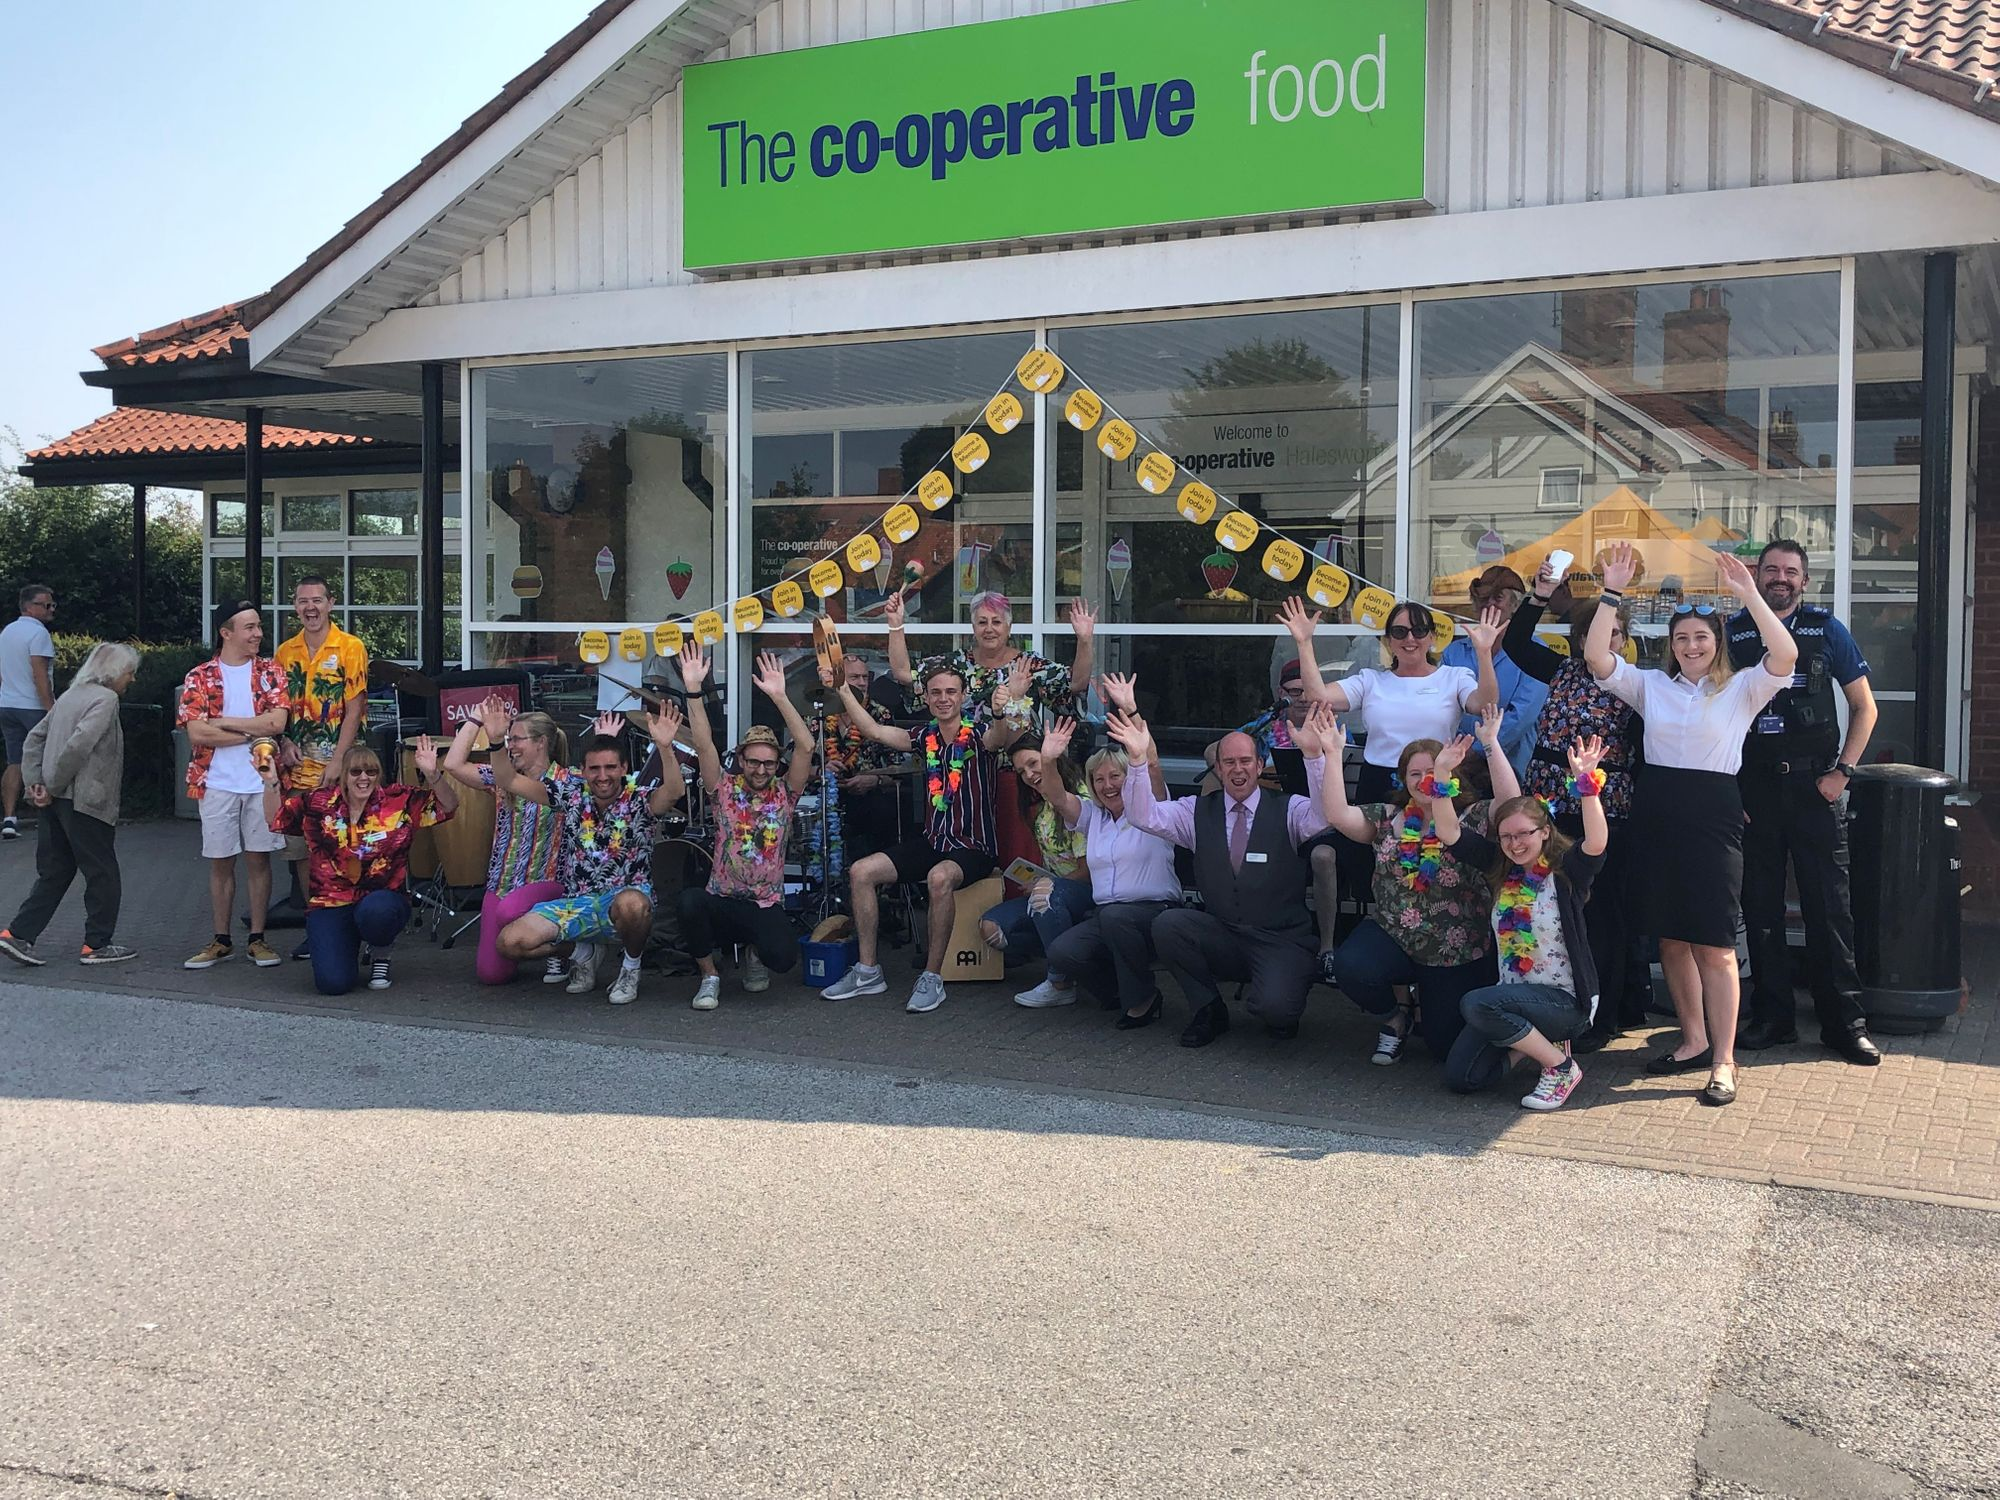 Halesworth Community Store puts on a show for their customers